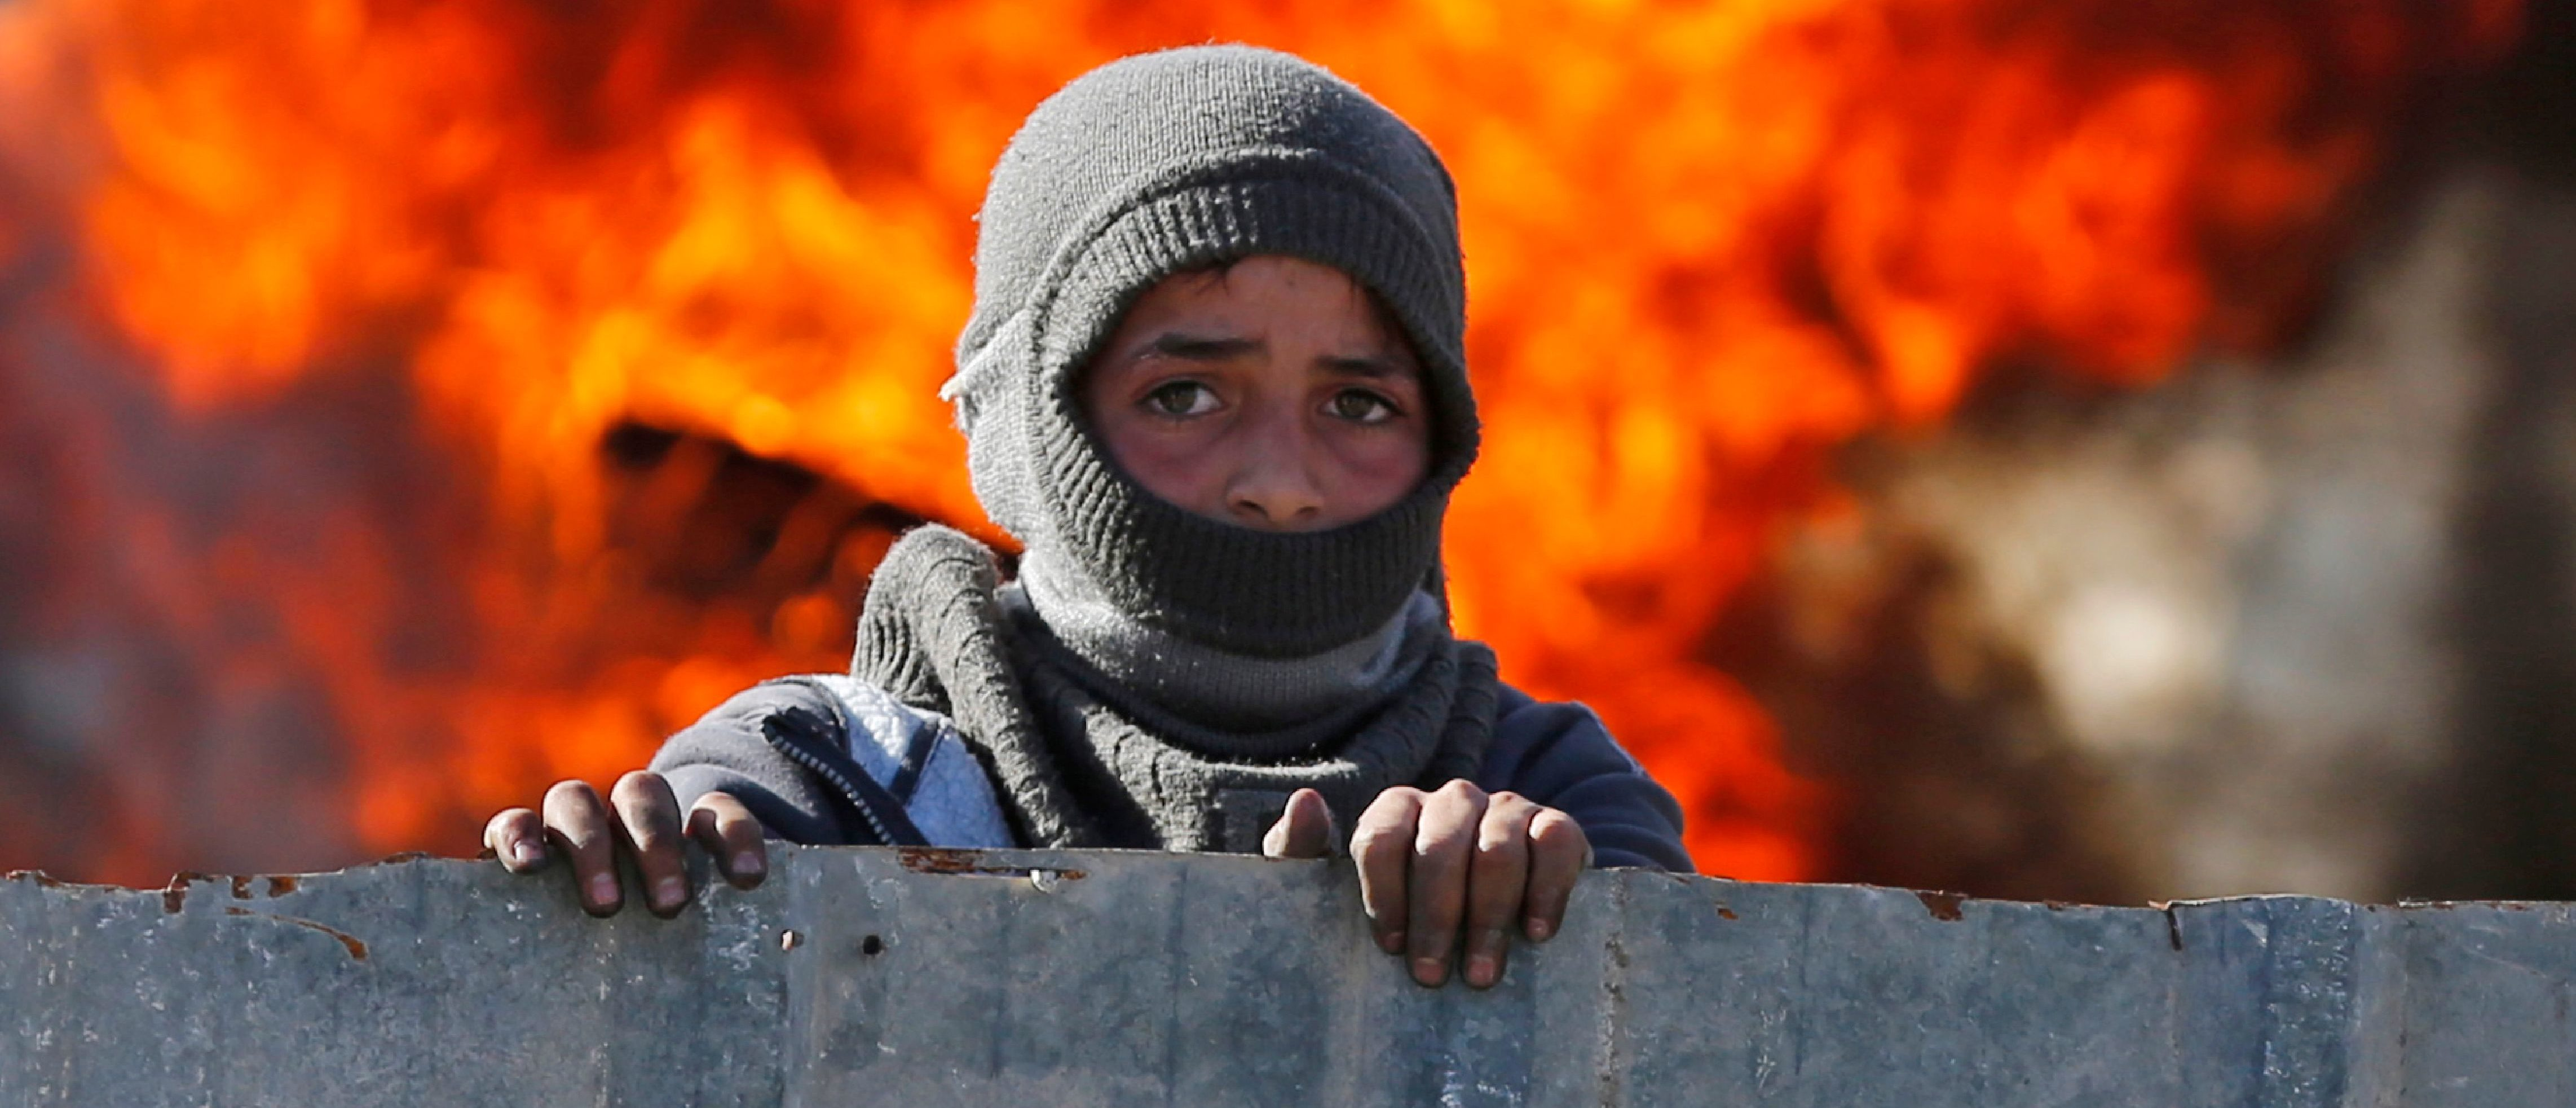 A masked Palestinian boy stands in front of flames during clashes with Israeli soldiers at the entrance of the northern village of Qusra in the occupied West Bank near Nablus on December 4, 2017. An Israeli settler shot dead a Palestinian in the occupied West Bank last week after a group of Israelis was targeted by Palestinian stone-throwers, officials said. / AFP PHOTO / ABBAS MOMANI (Photo credit should read ABBAS MOMANI/AFP/Getty Images)